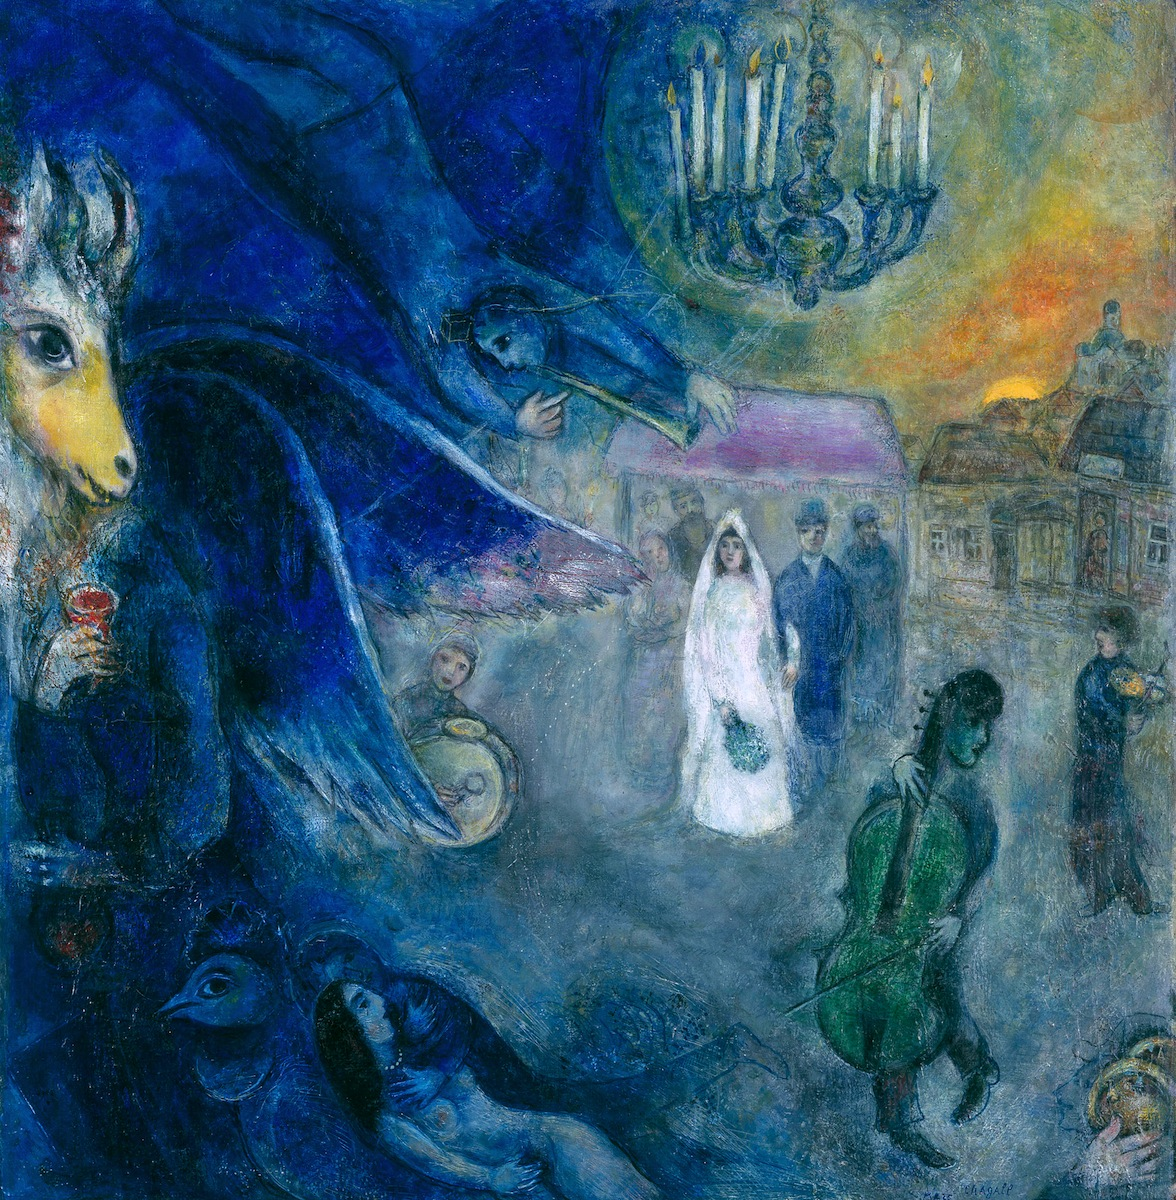 The Wedding Candles (1945); oil on canvas by Marc Chagall Kunsthaus Zurich. © 2013 Artists Rights Society (ARS), New York / ADAGP, Paris